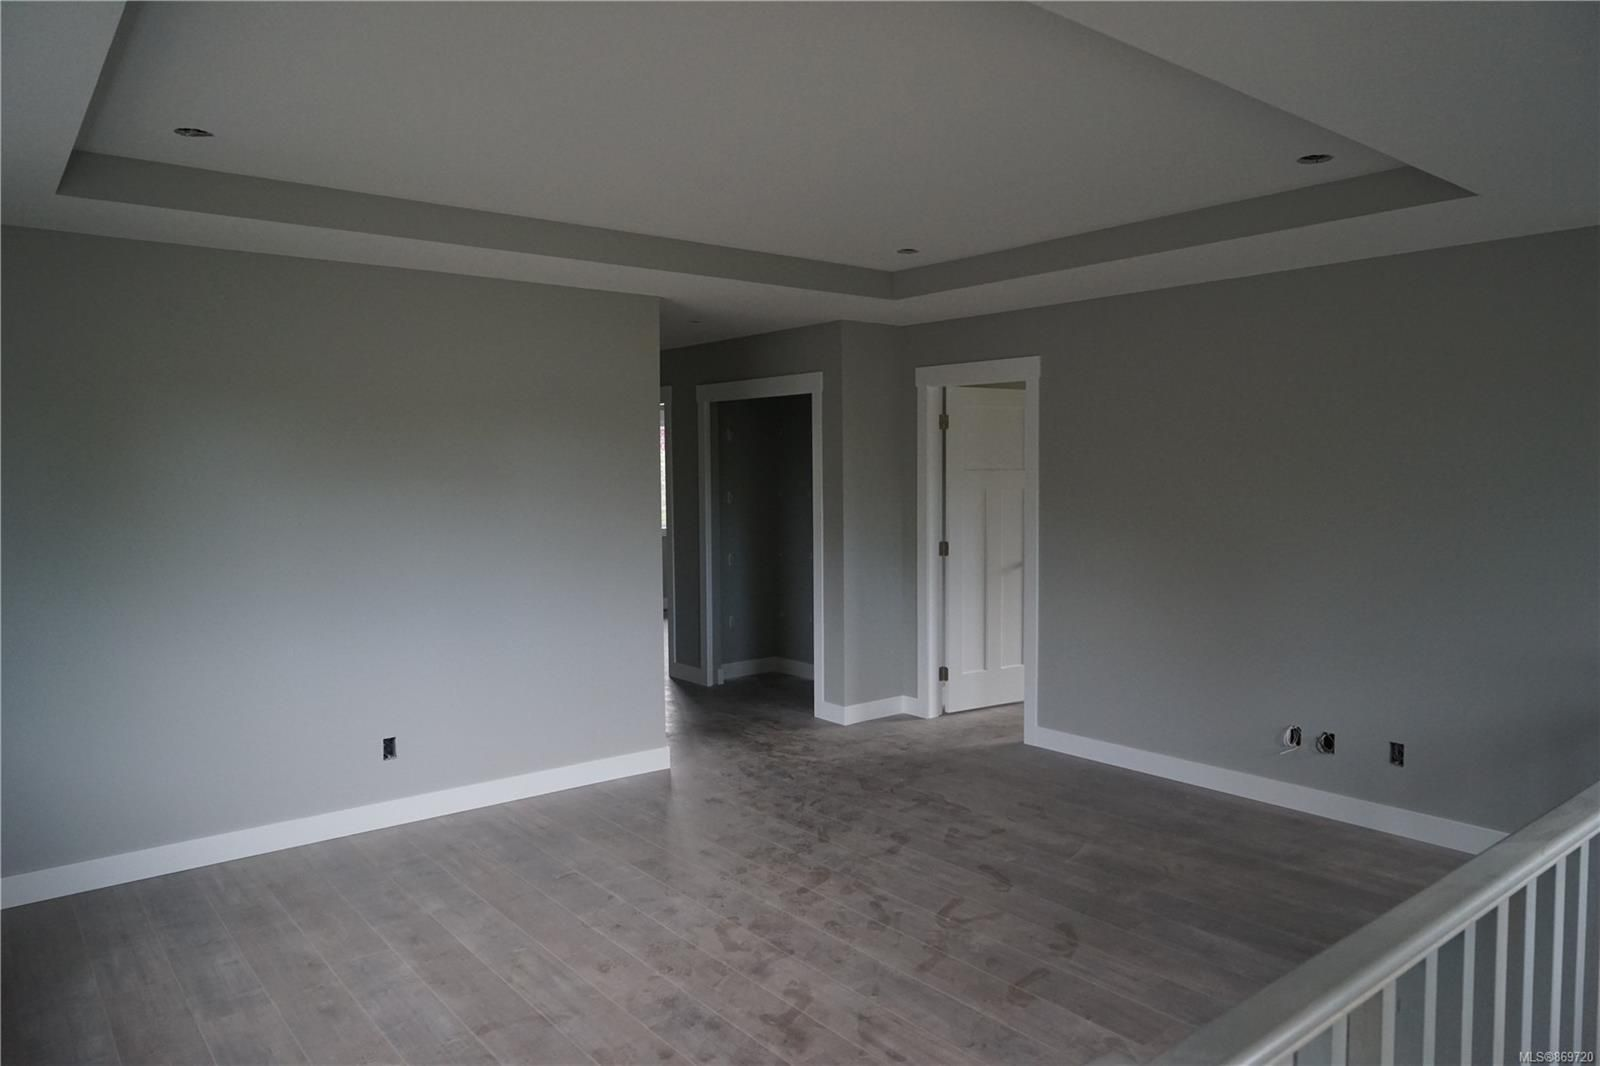 Photo 23: Photos: 770 Bruce Ave in : Na South Nanaimo House for sale (Nanaimo)  : MLS®# 869720